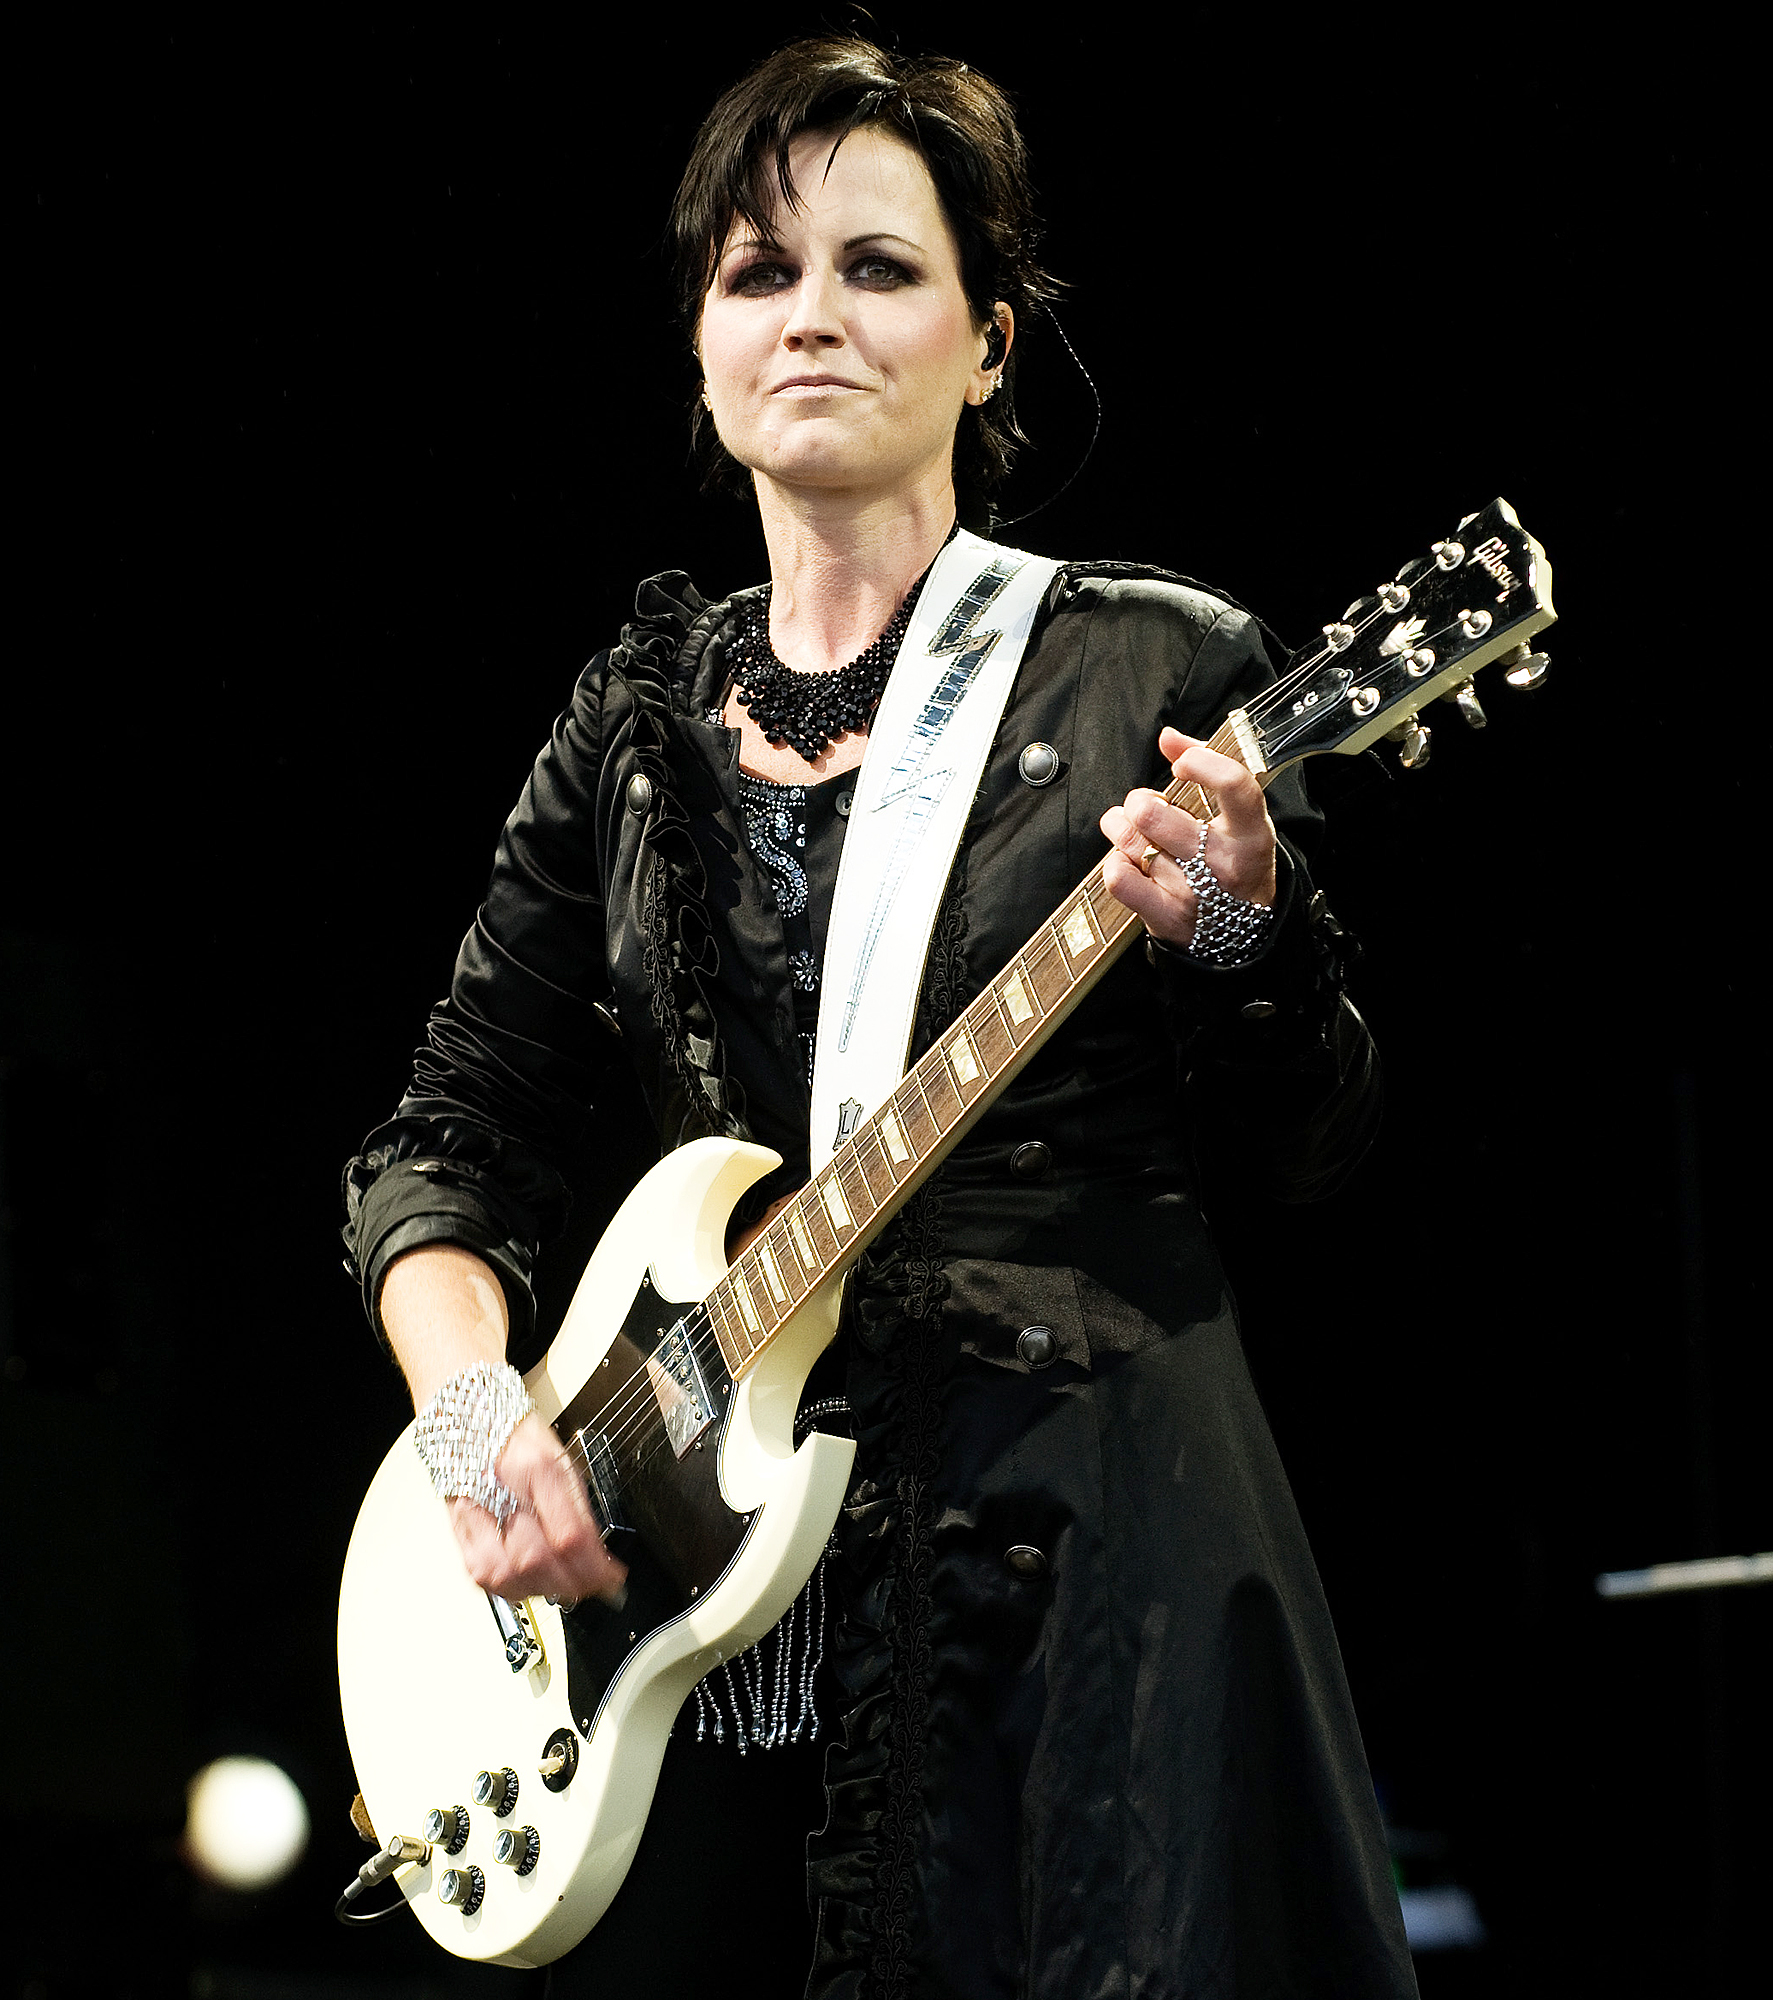 Dolores O'Riordan performing at a stage